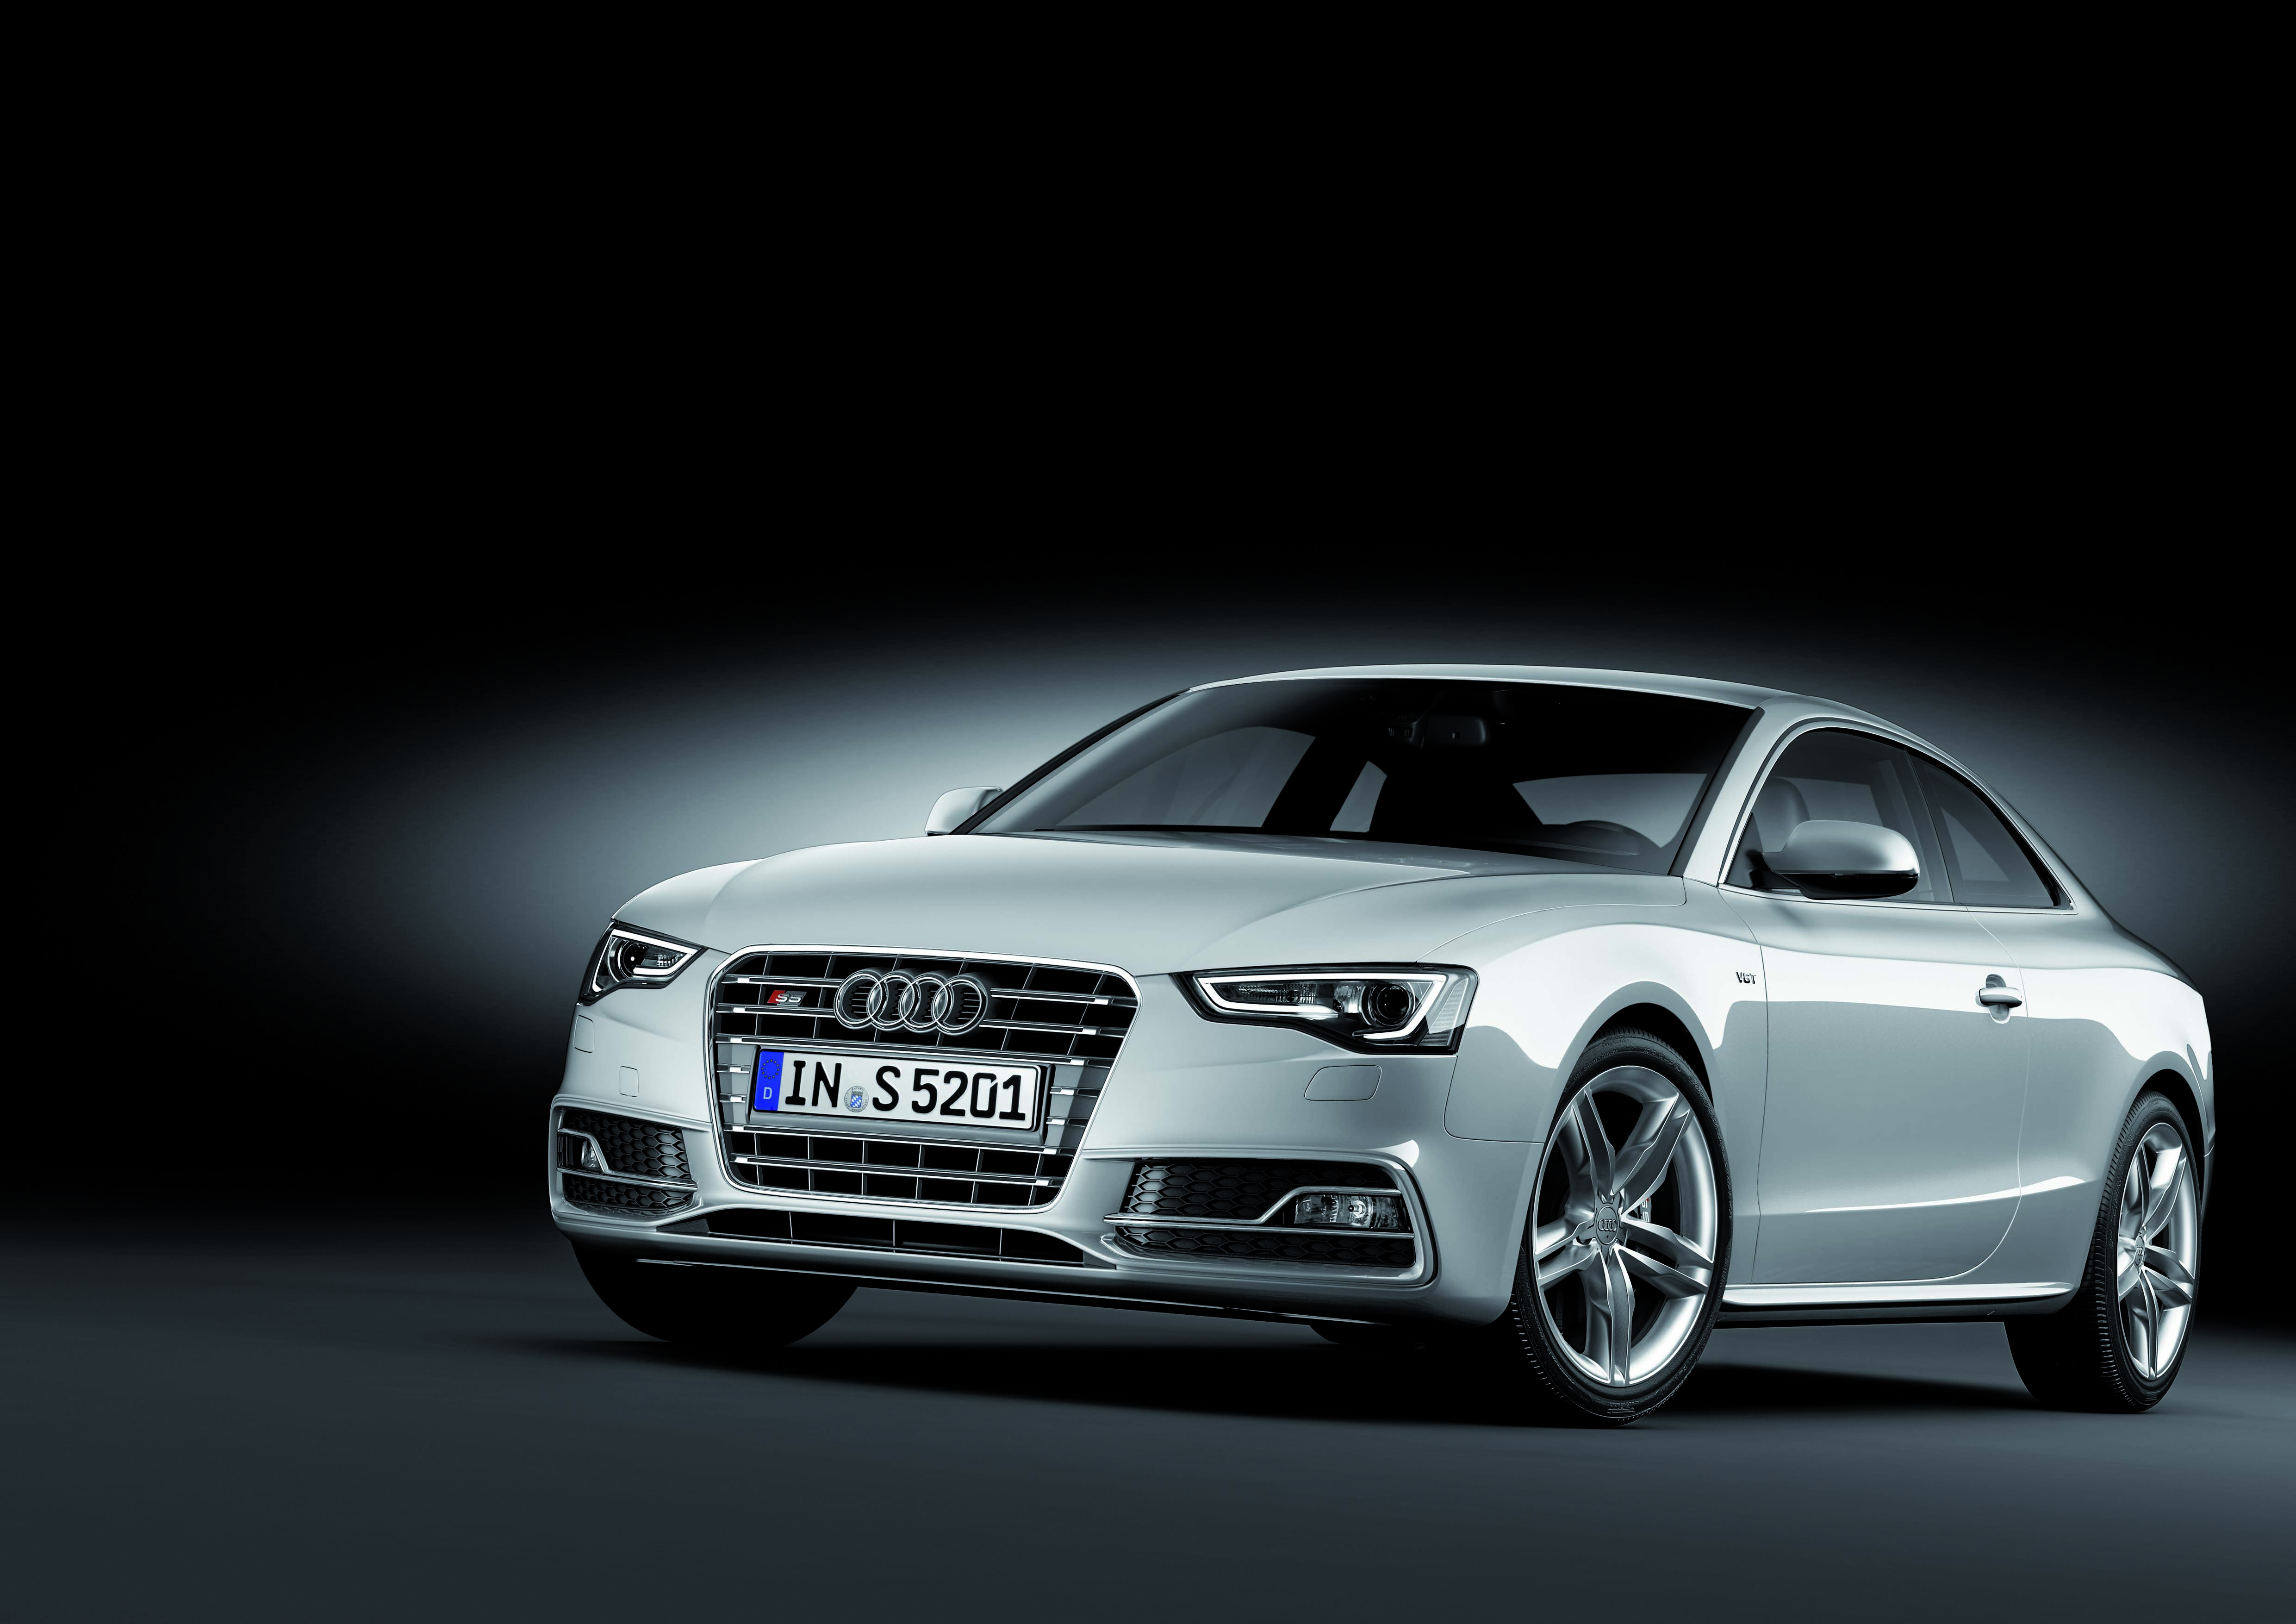 Pictures of audi a5 (8t3) 2013 #10